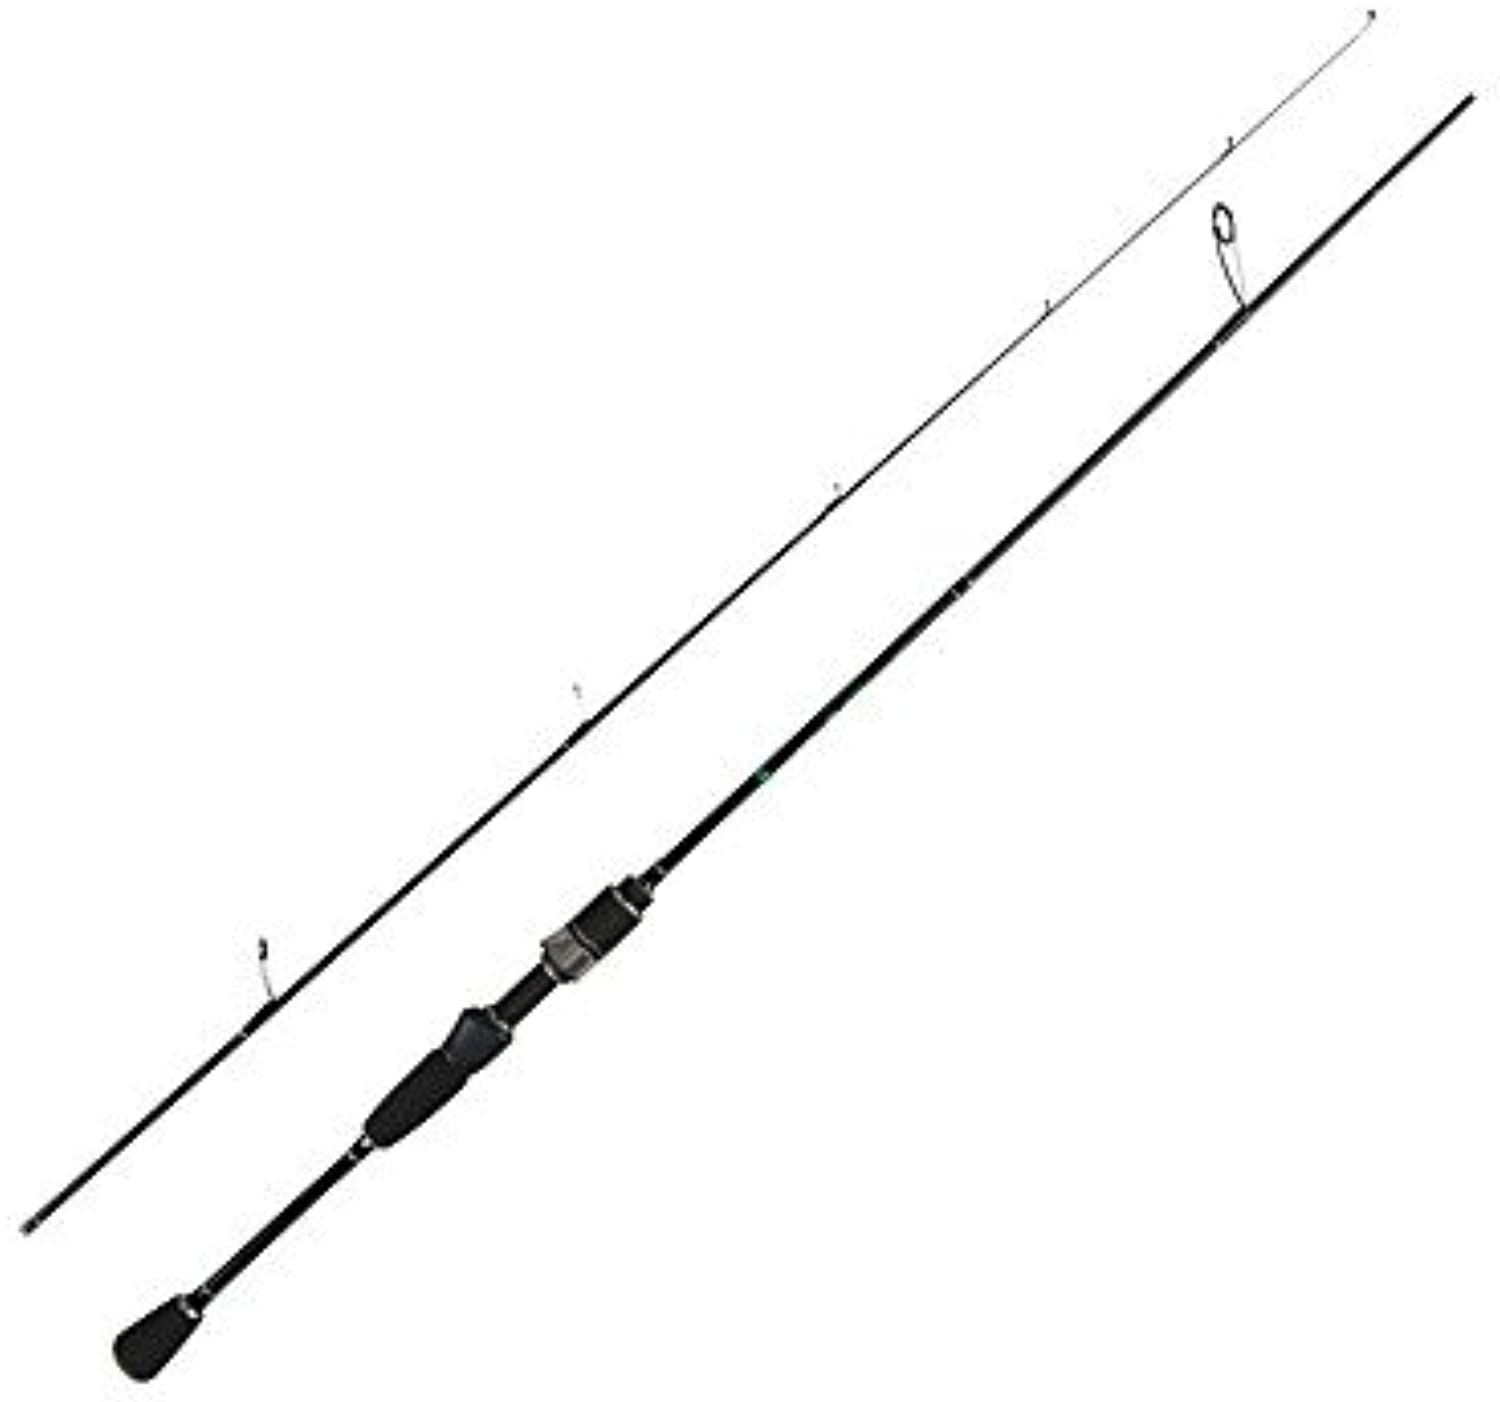 RTS UL Fishing Rod 0.6-6g Test Fast Action 1.68m Spinning Rod for Light Jigging Trout Rod with Solid tip 2 Sections Carbon Rod